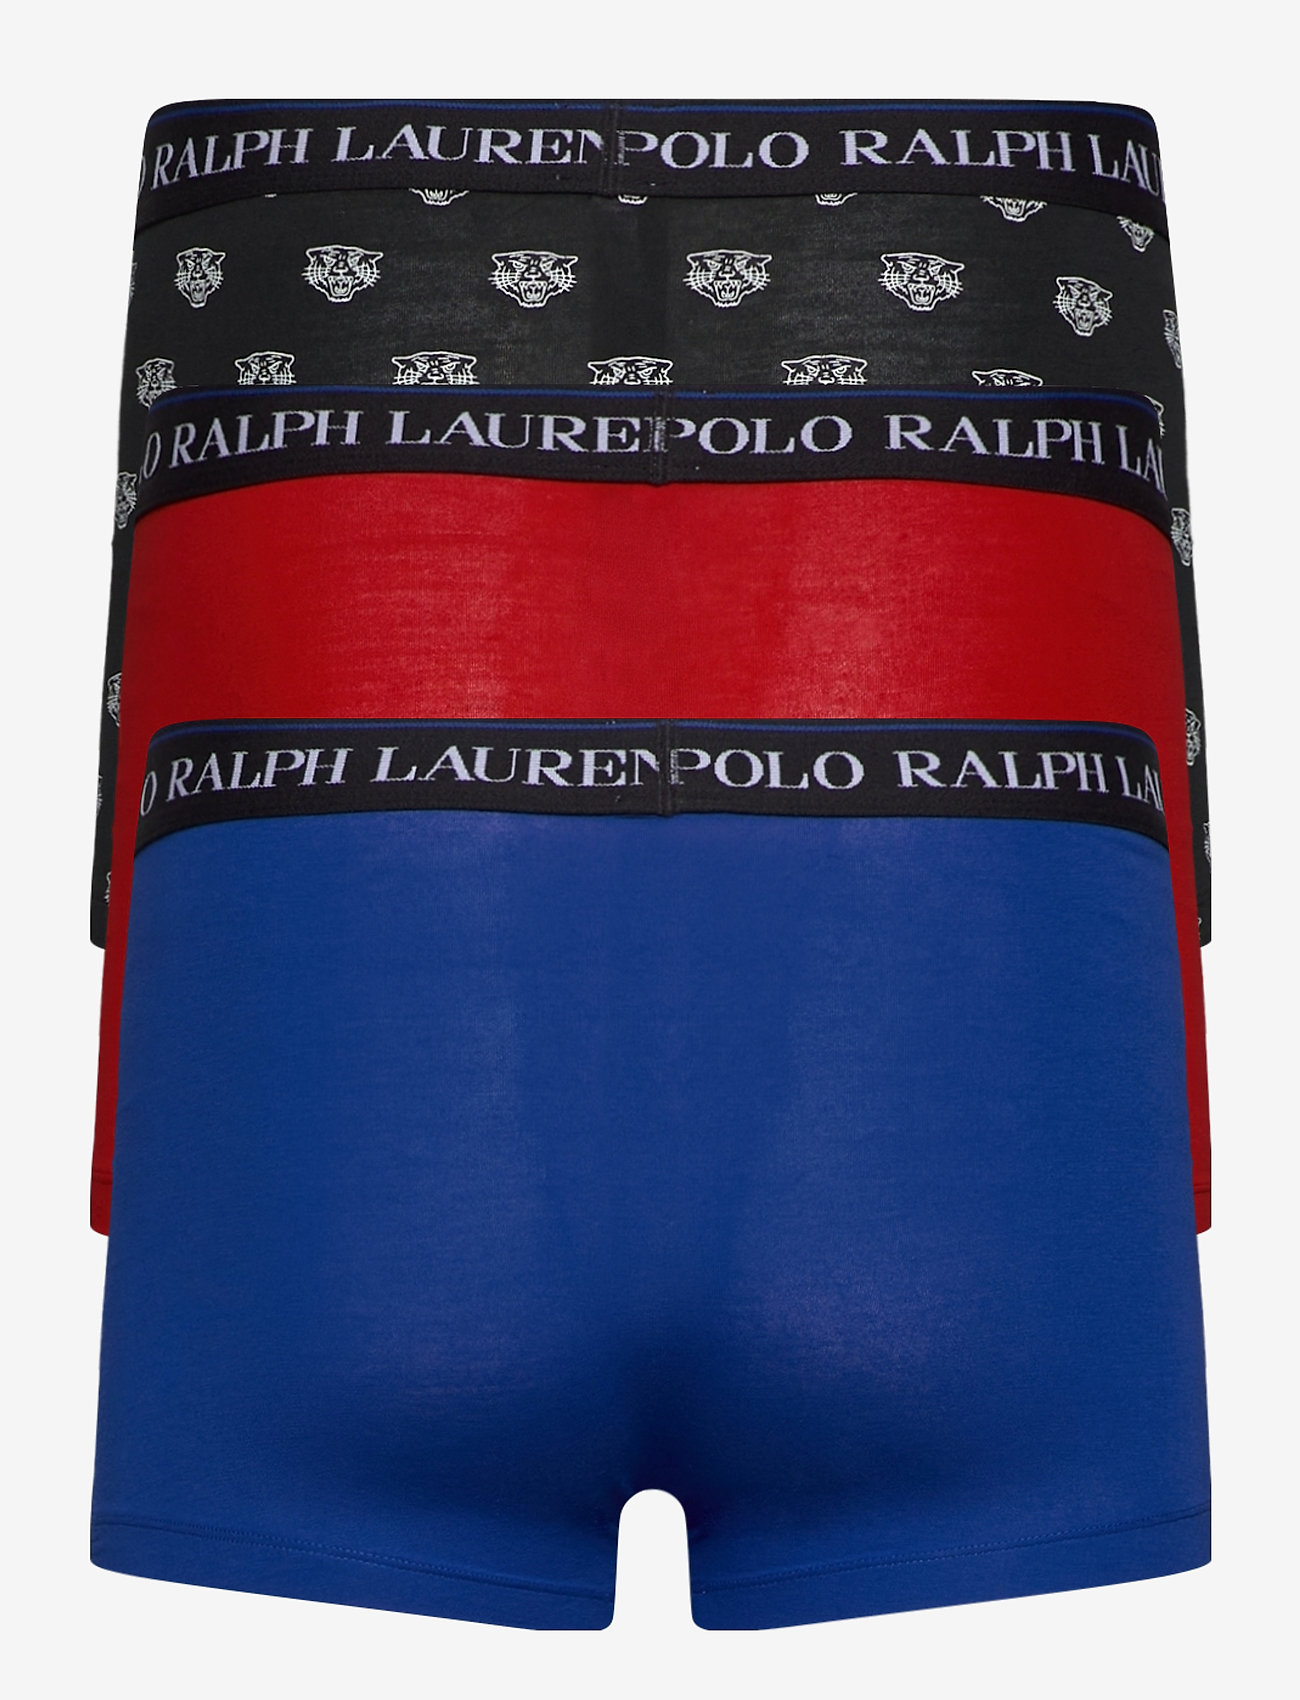 Polo Ralph Lauren Underwear - Classic Stretch-Cotton Trunk 3-Pack - boxers - 3pk red/sph str/b - 1